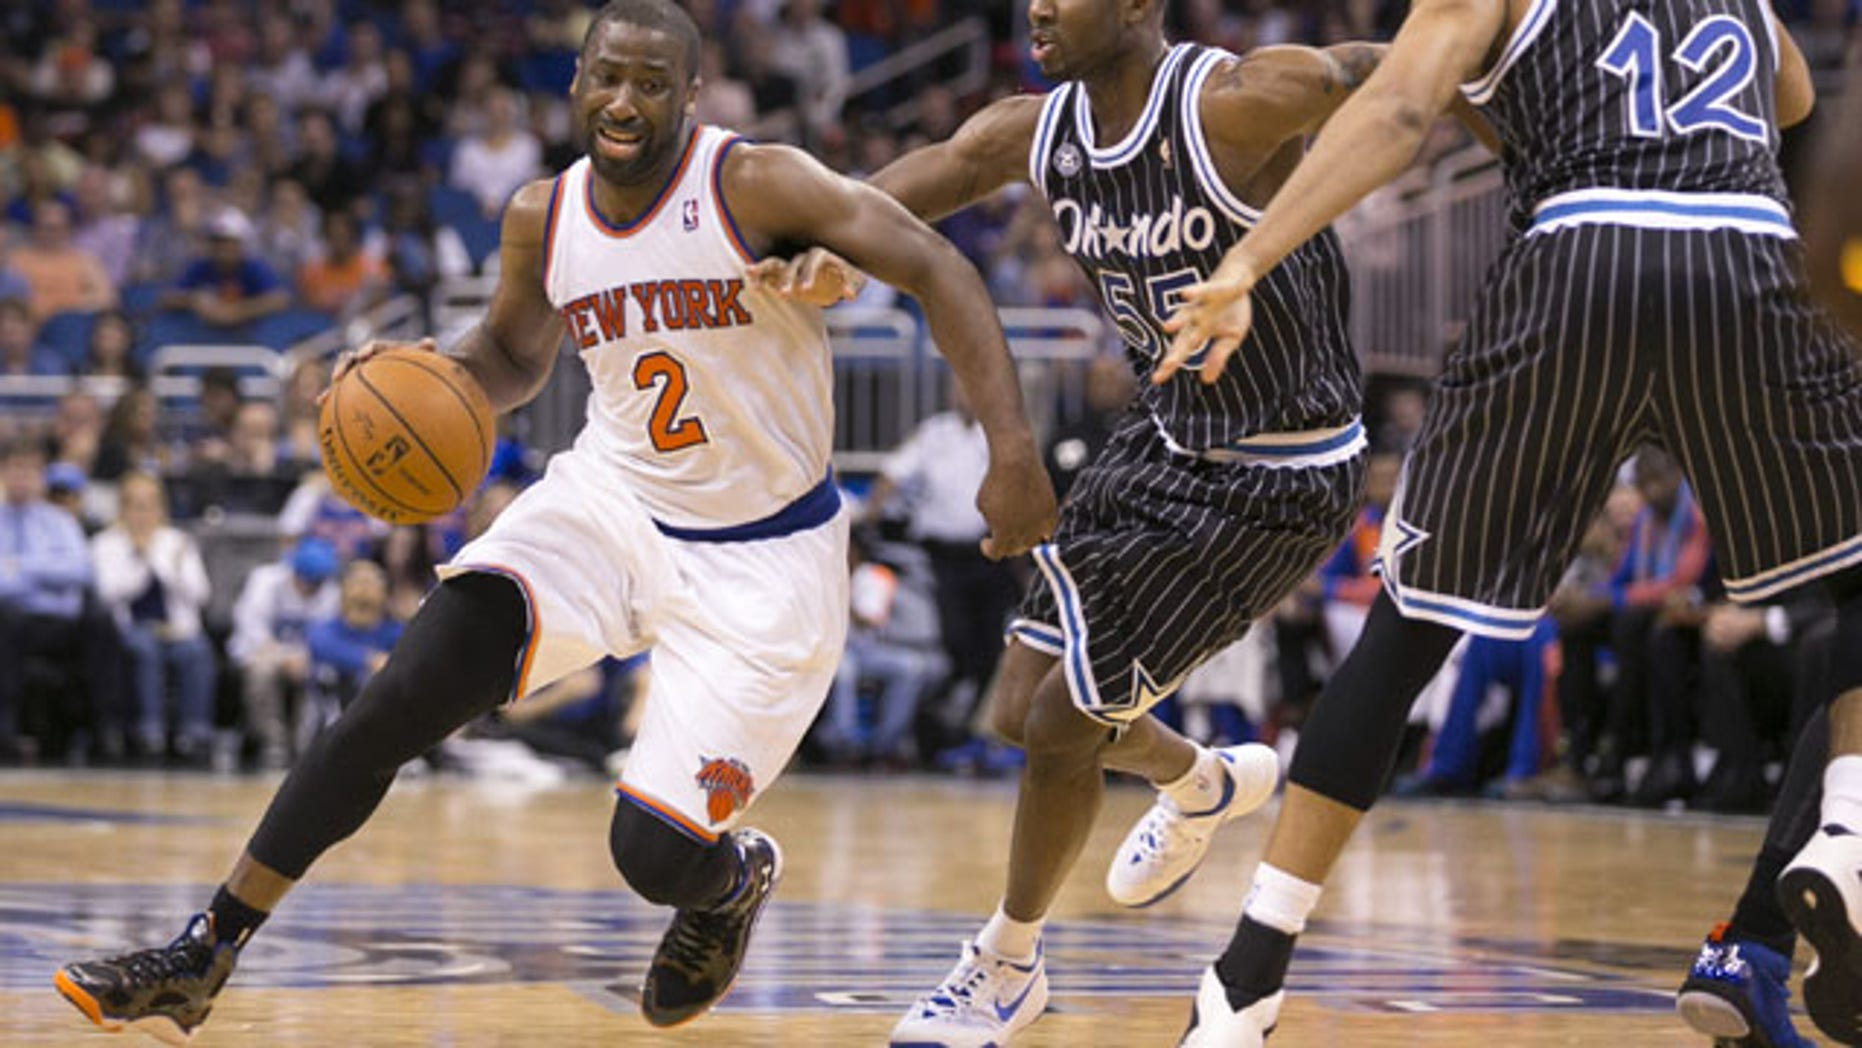 February 21, 2014: New York Knicks' Raymond Felton (2) dribbles around Orlando Magic's E'Twaun Moore (55) and Tobias Harris (12) during an NBA basketball game in Orlando, Fla. The Magic won 129-121 in two overtimes. (AP Photos/Willie J. Allen Jr.)